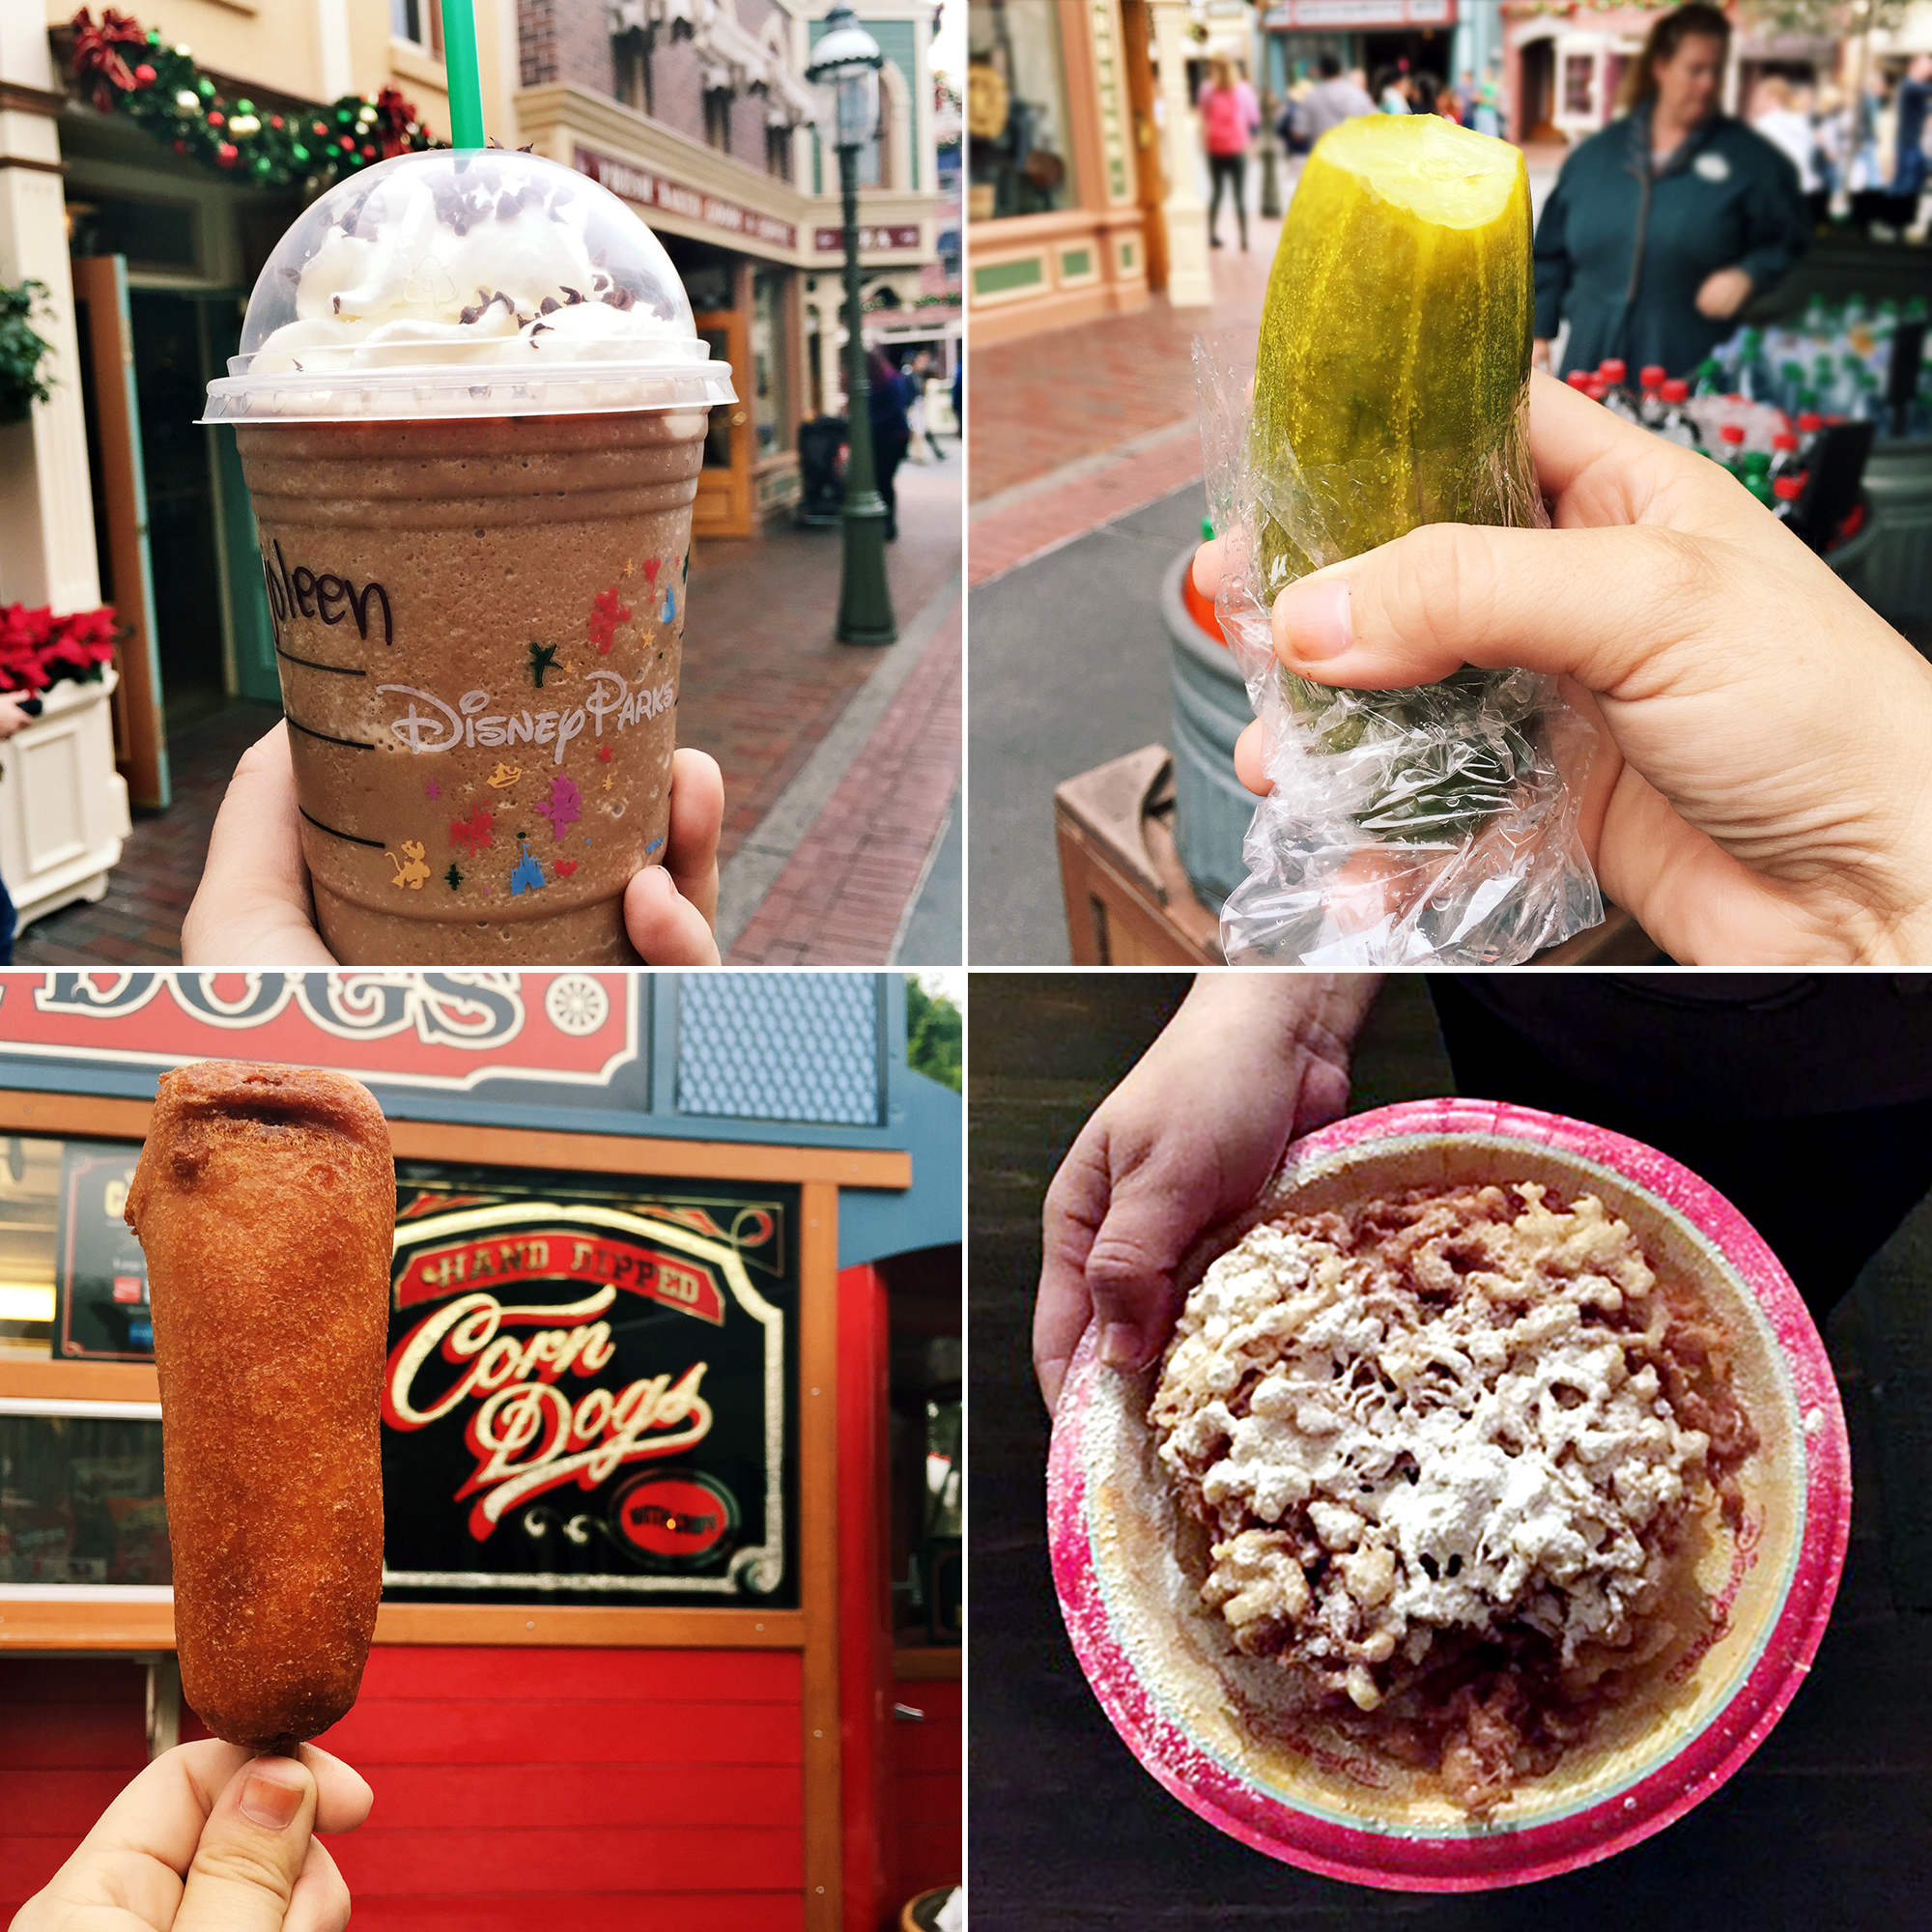 Disney food favorites, a mocha frappacino from Starbucks, a big pickle, a corn dog, and funnel cake.